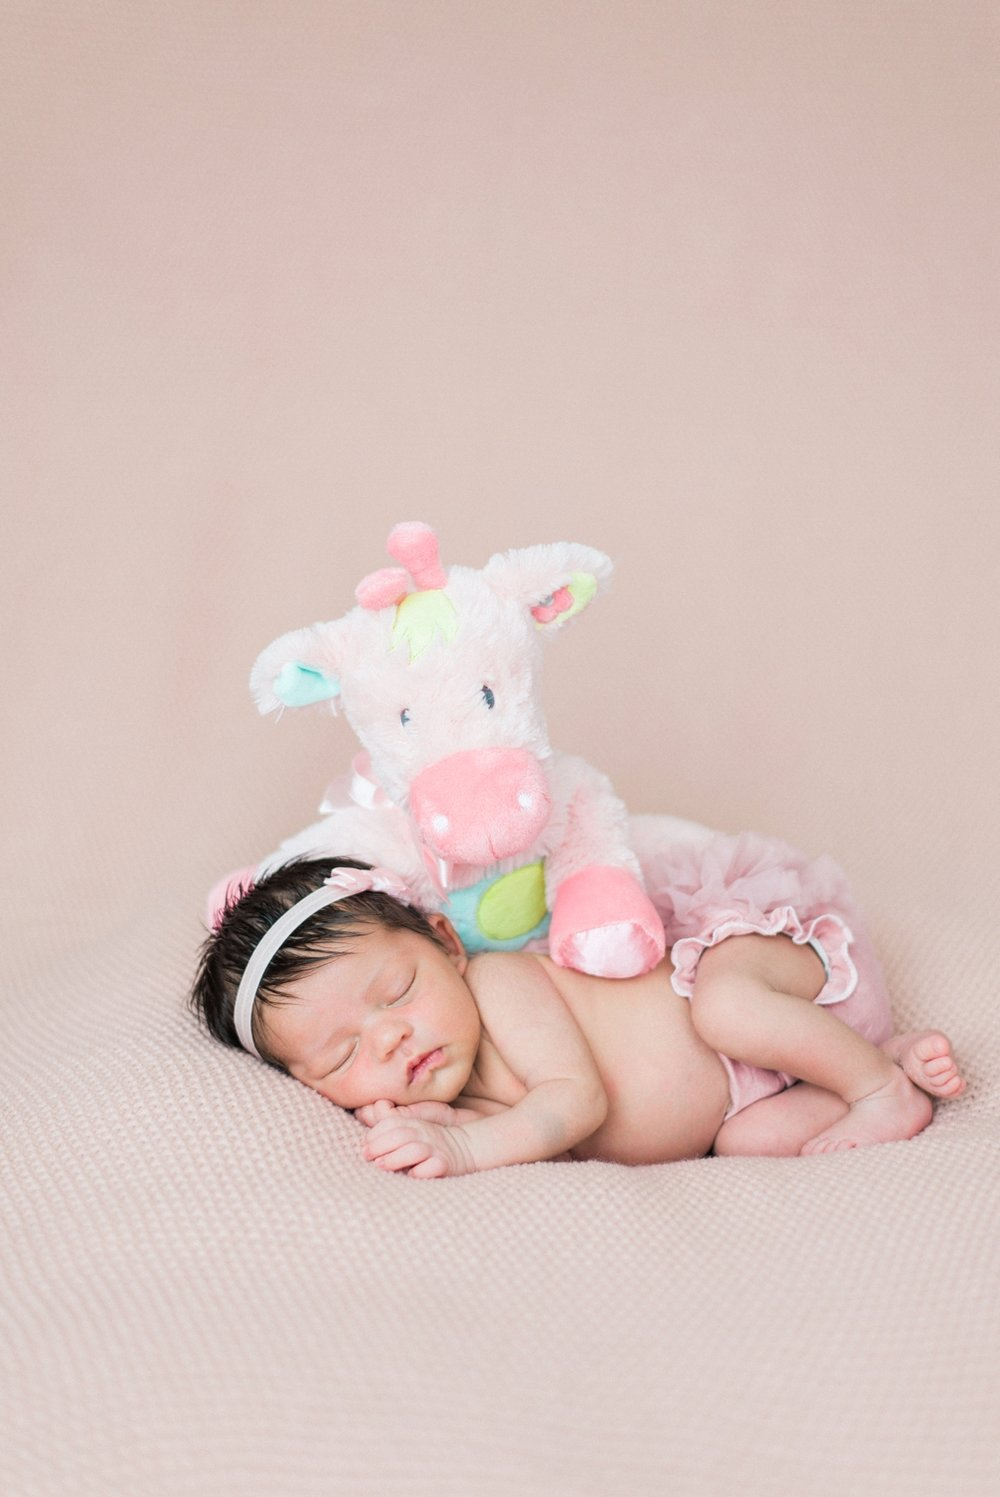 portland-newborn-photographer-baby-girl-shelley-marie-photo-4